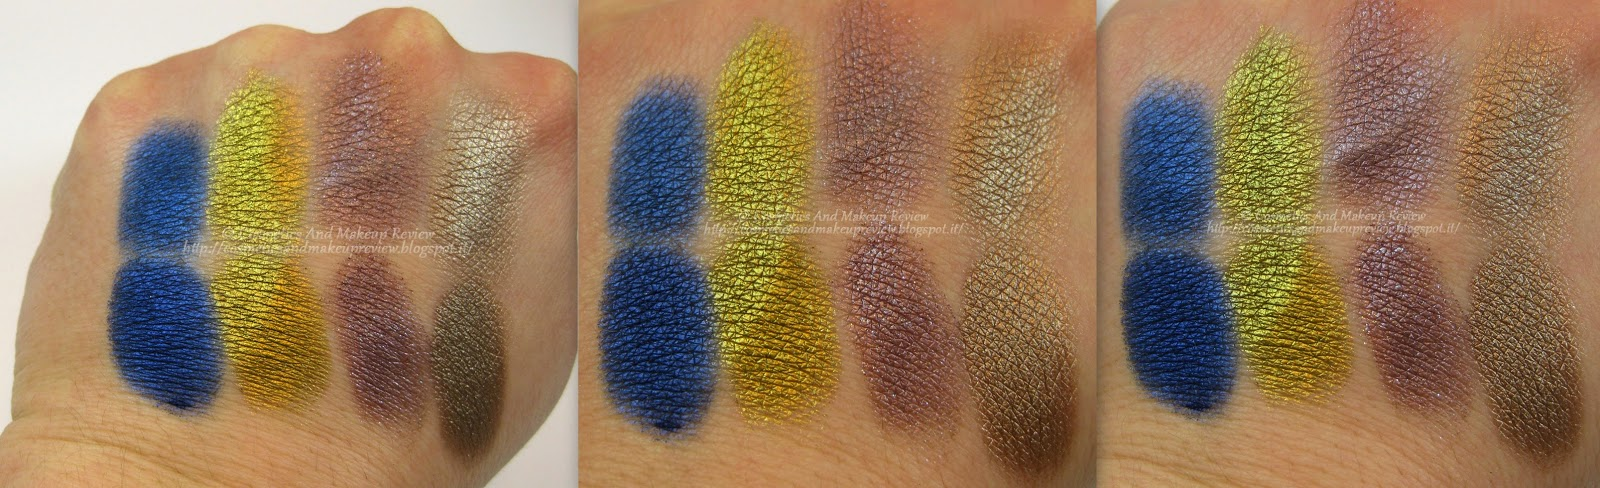 Nabla Cosmetics - Genesis Collection - swatches Eternity - Citron - Superposition - Sandy